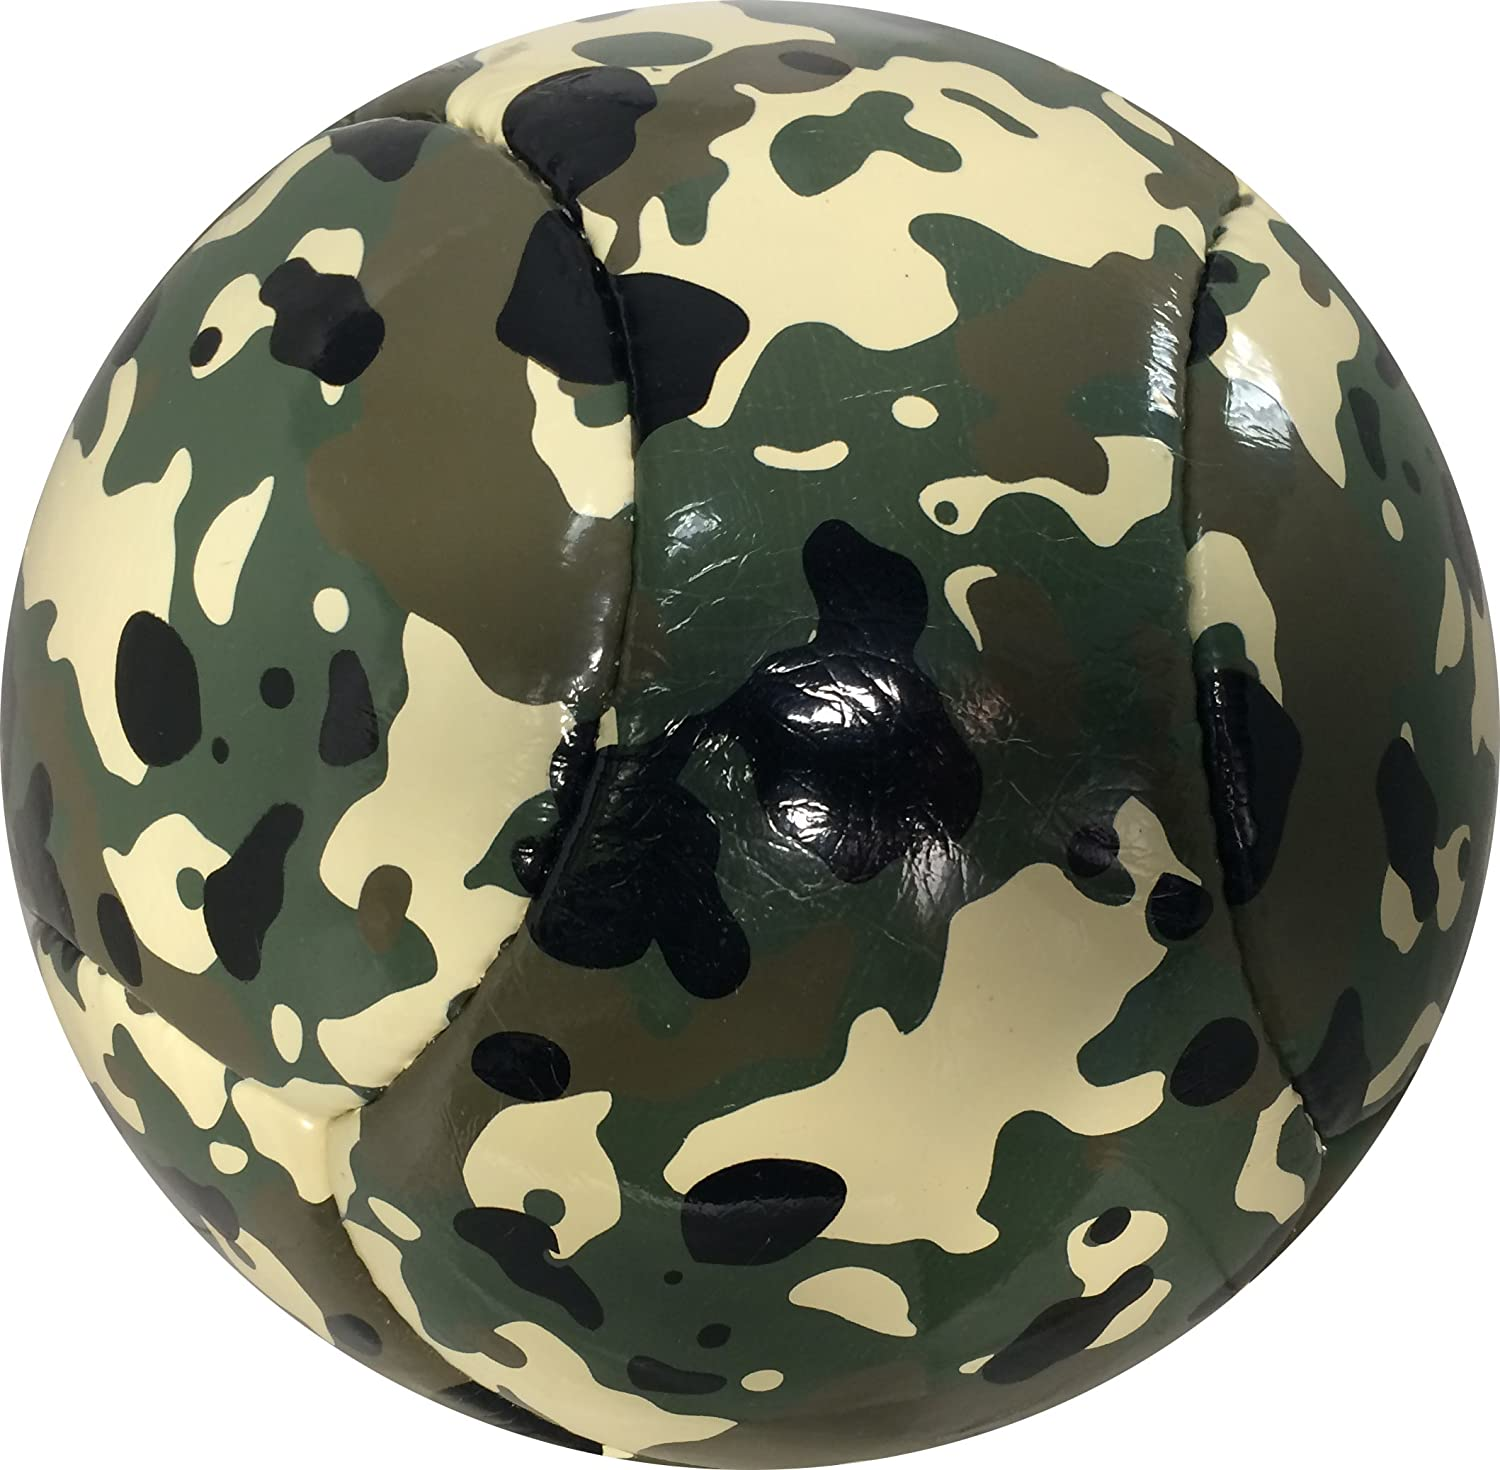 Amazon.com   Army Camouflage Gift Soccer Ball - 6 Panels Unique Gift for  Soccer Fans (Army Camouflage 29f0a85c0c71